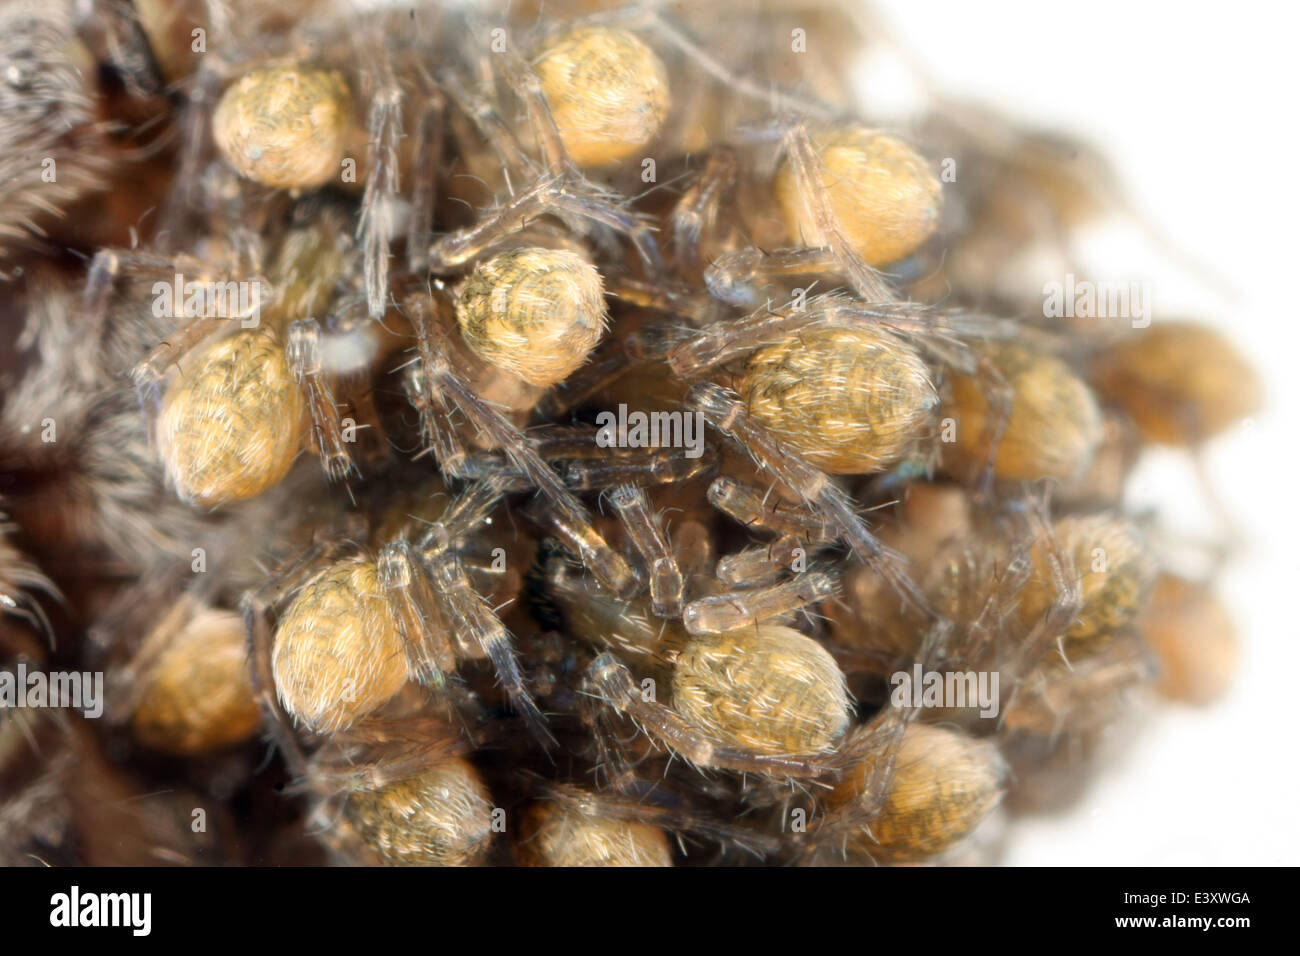 Pardosa amentata (Spotted wolf spider) spiderlings on the back of their mother, part of the family Lycosidae - Wolf - Stock Image